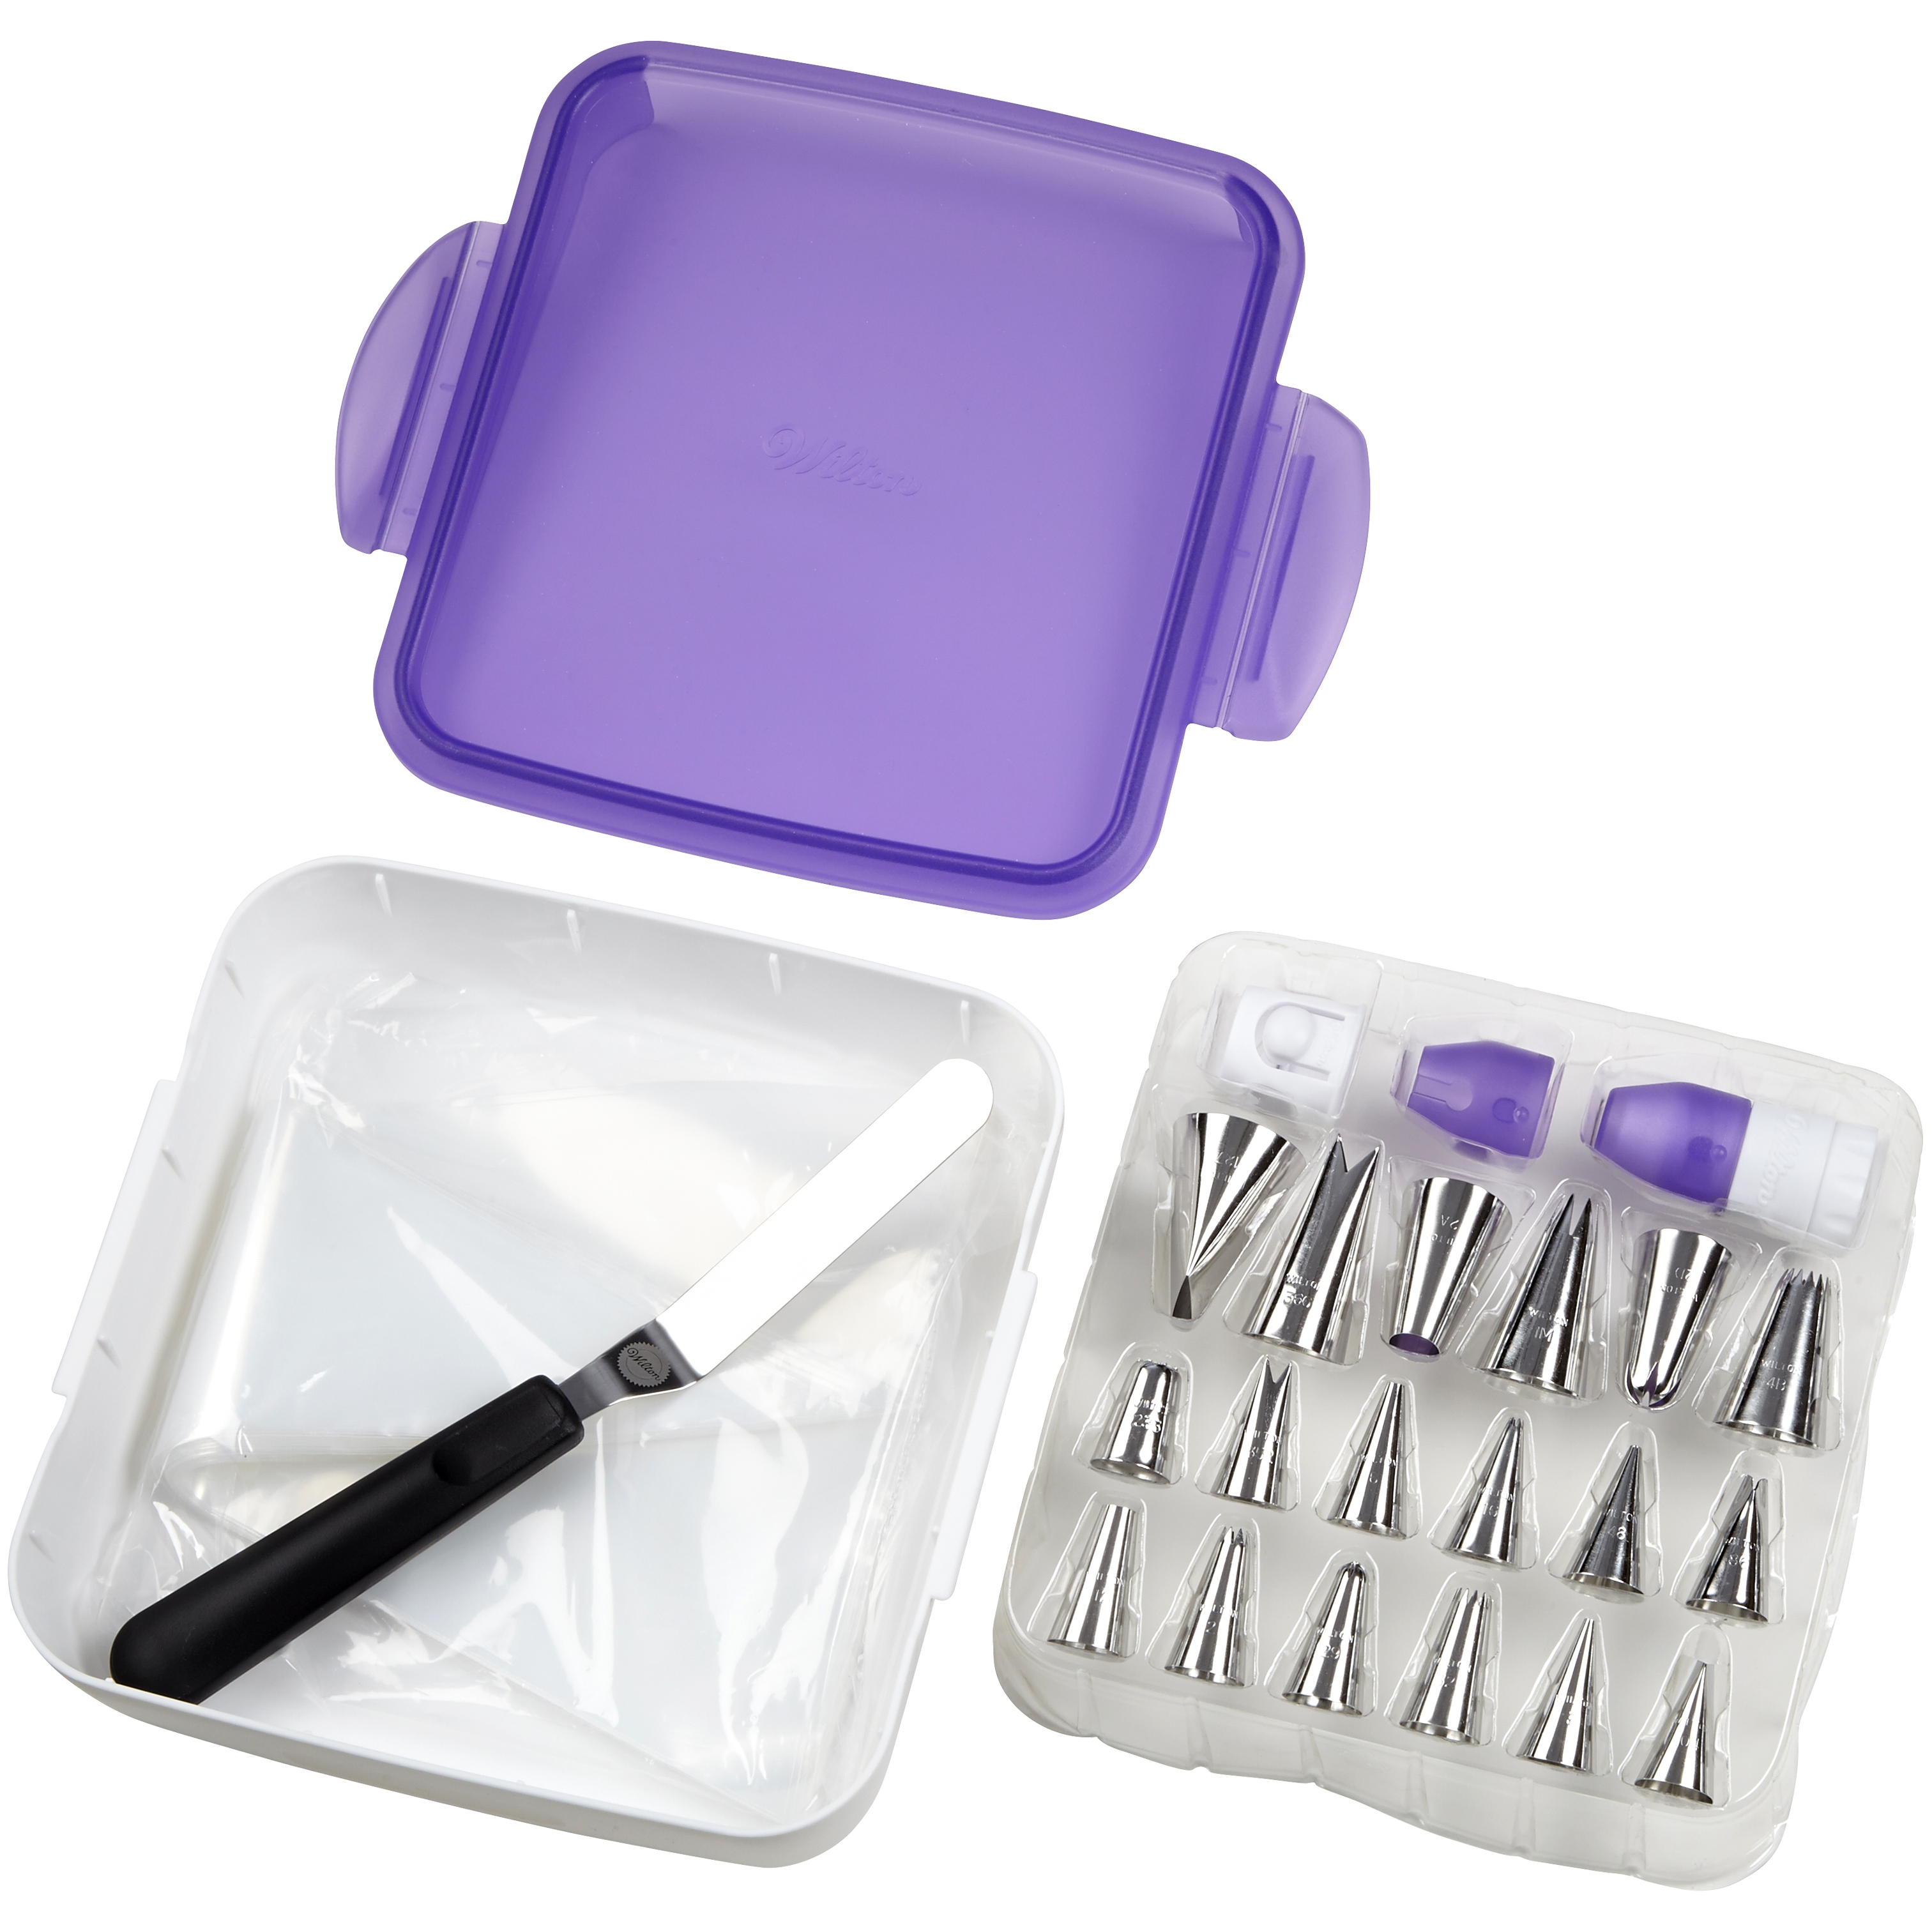 Wilton Deluxe Cake Decorating Set, 46-Piece